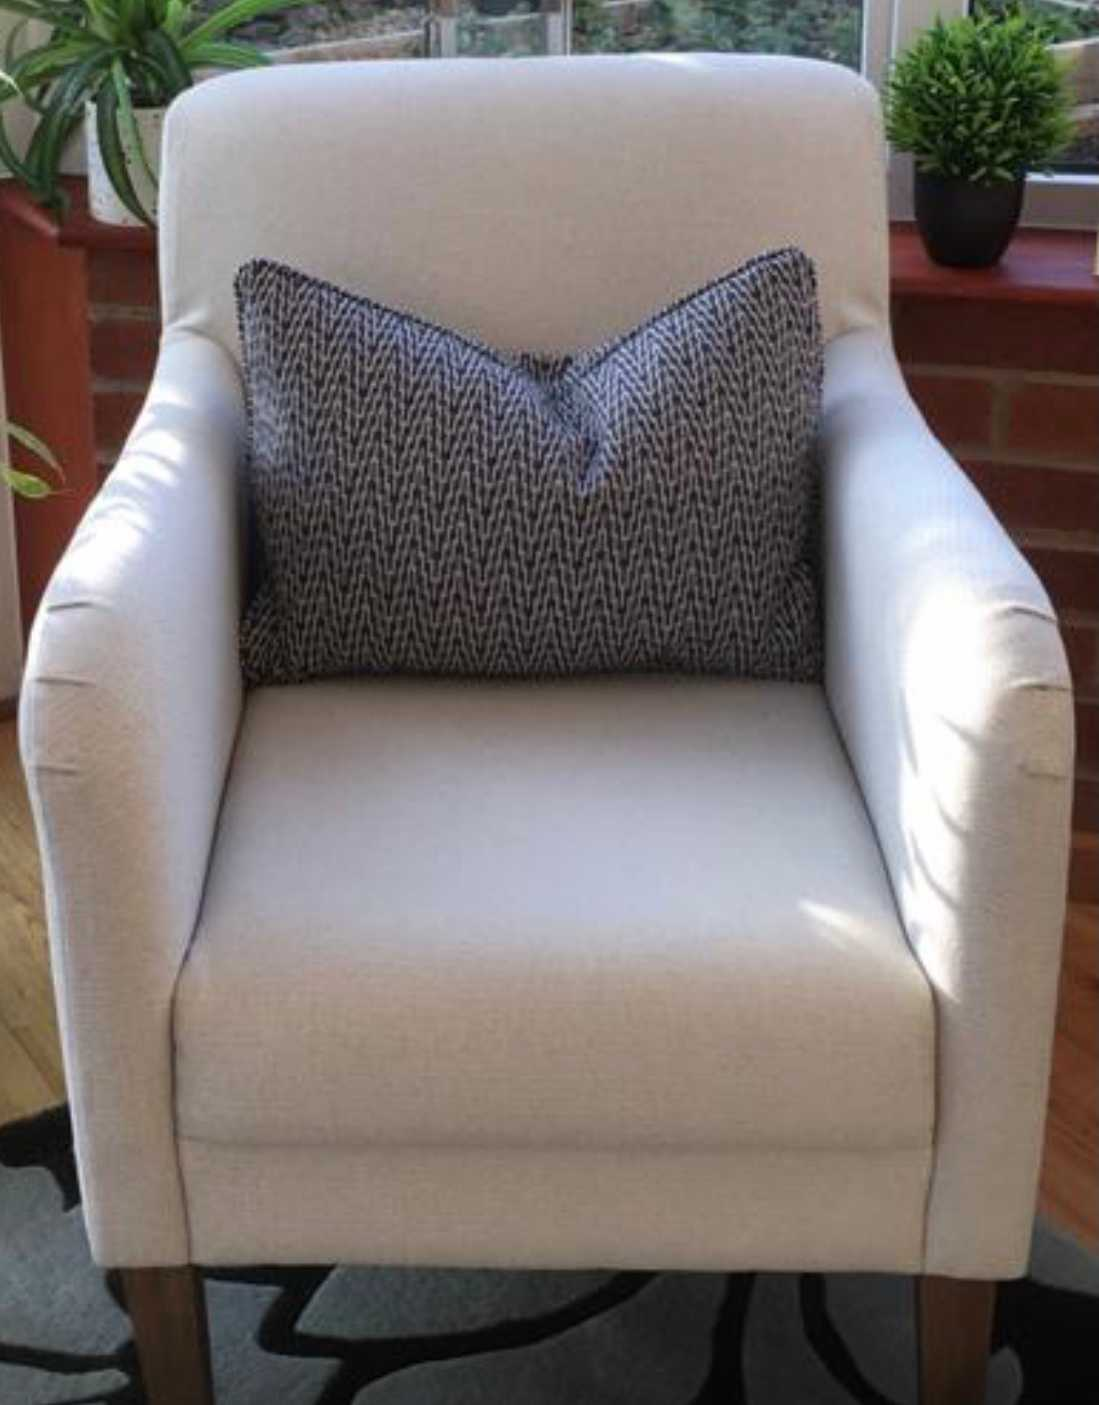 Conservatory Chair in Pumice Stone Colour